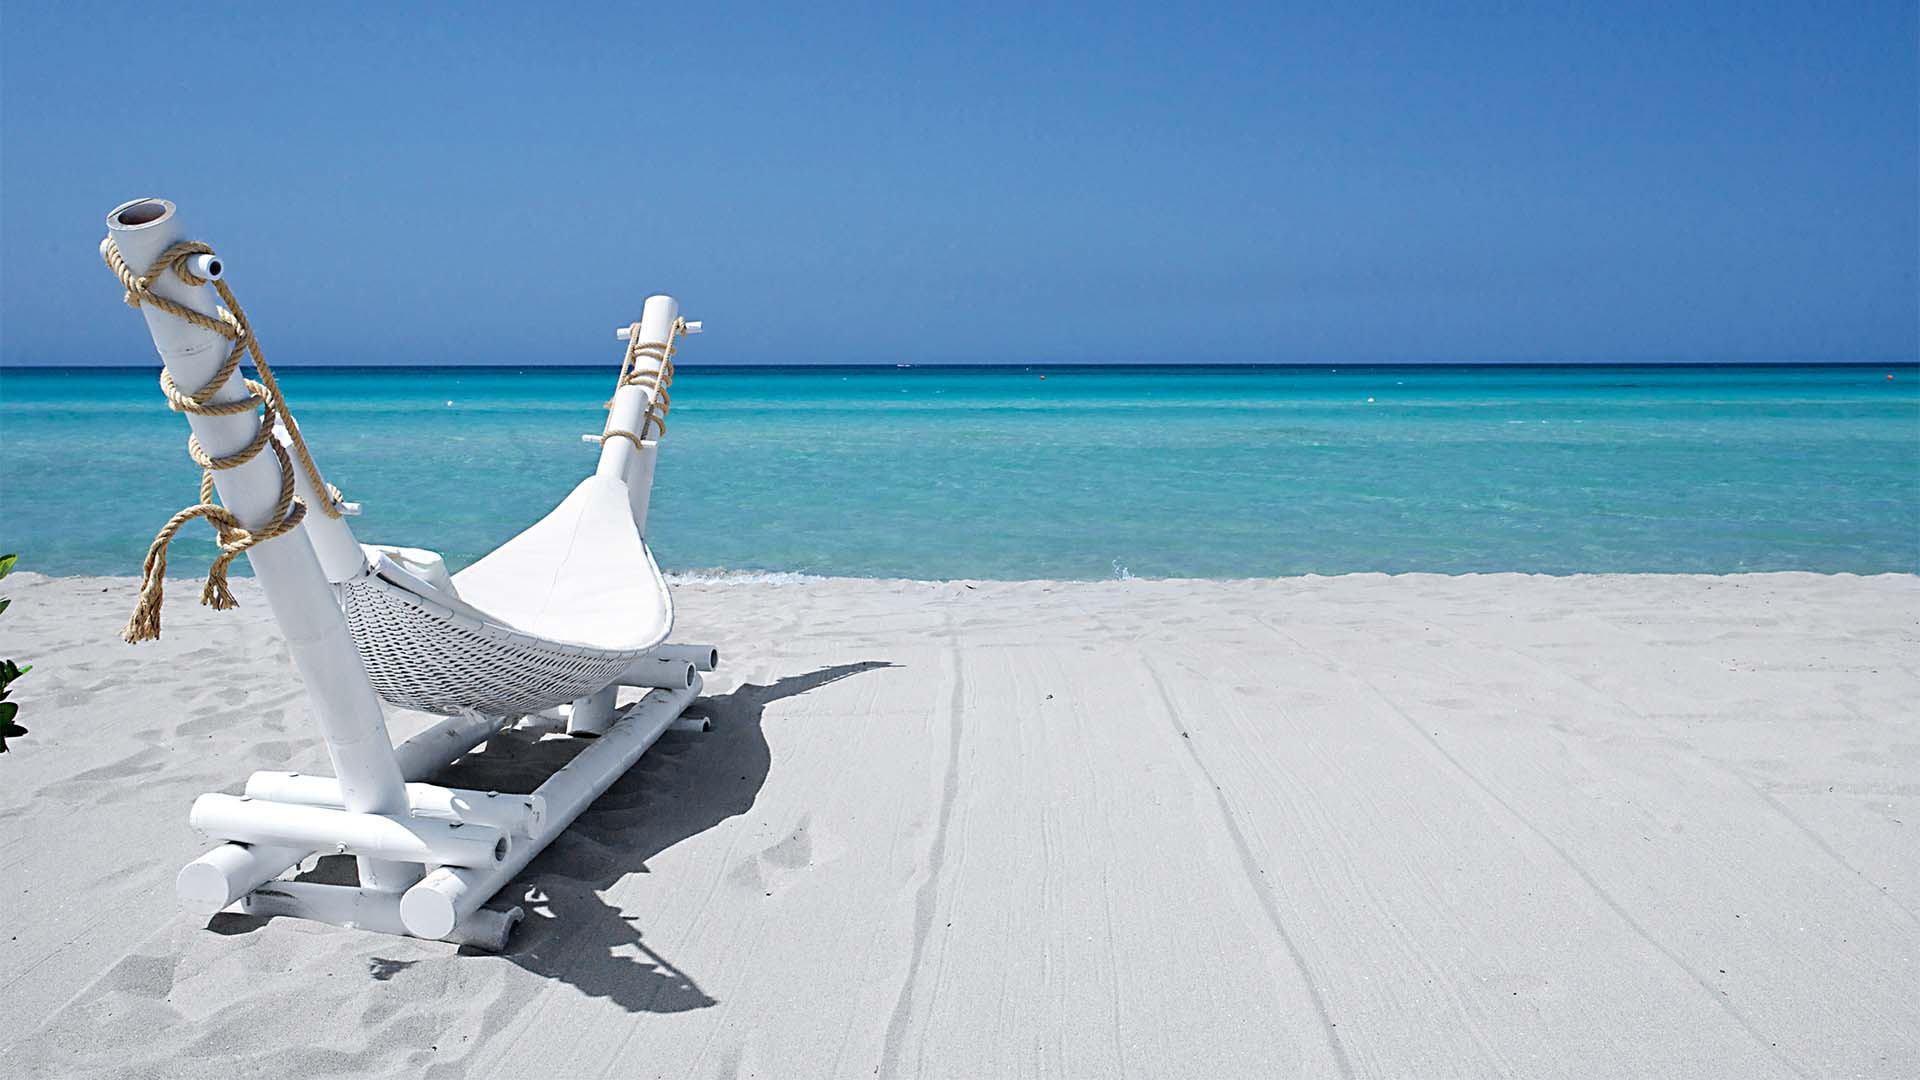 Lounger on the beach, Puglia, Italy